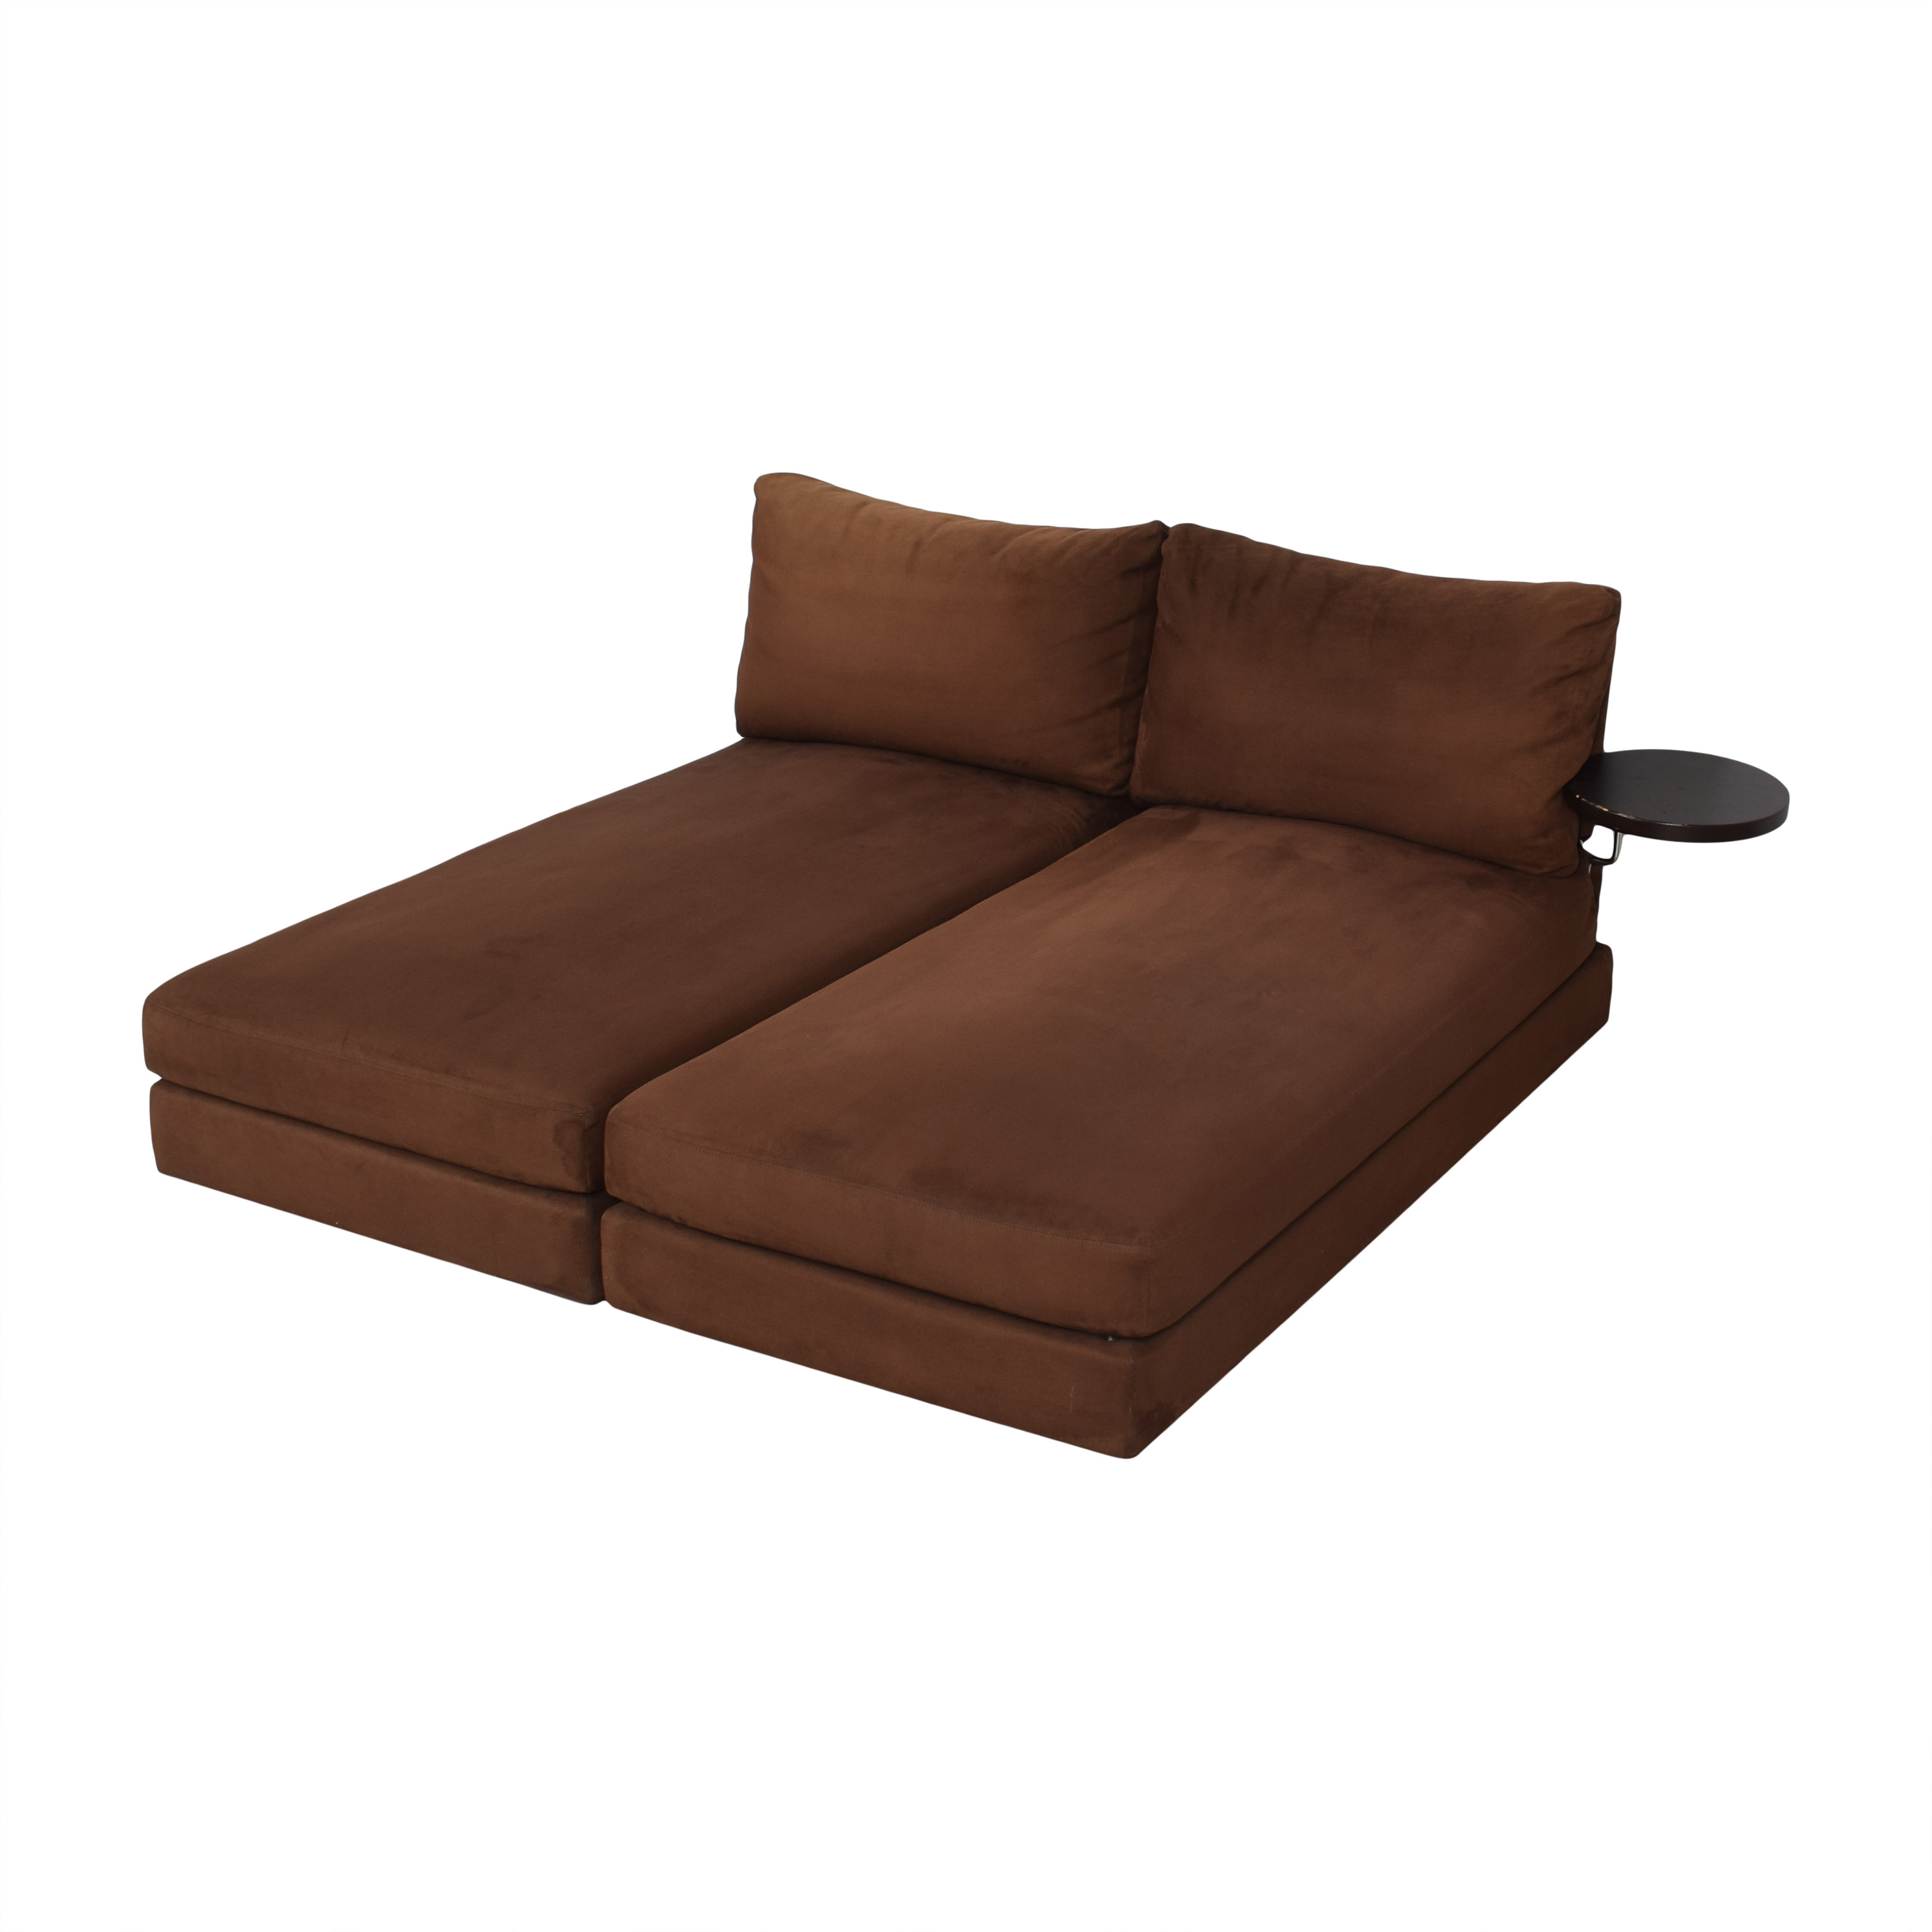 King Furniture King Furniture Suede Chaise Sectional with Table Attachment coupon